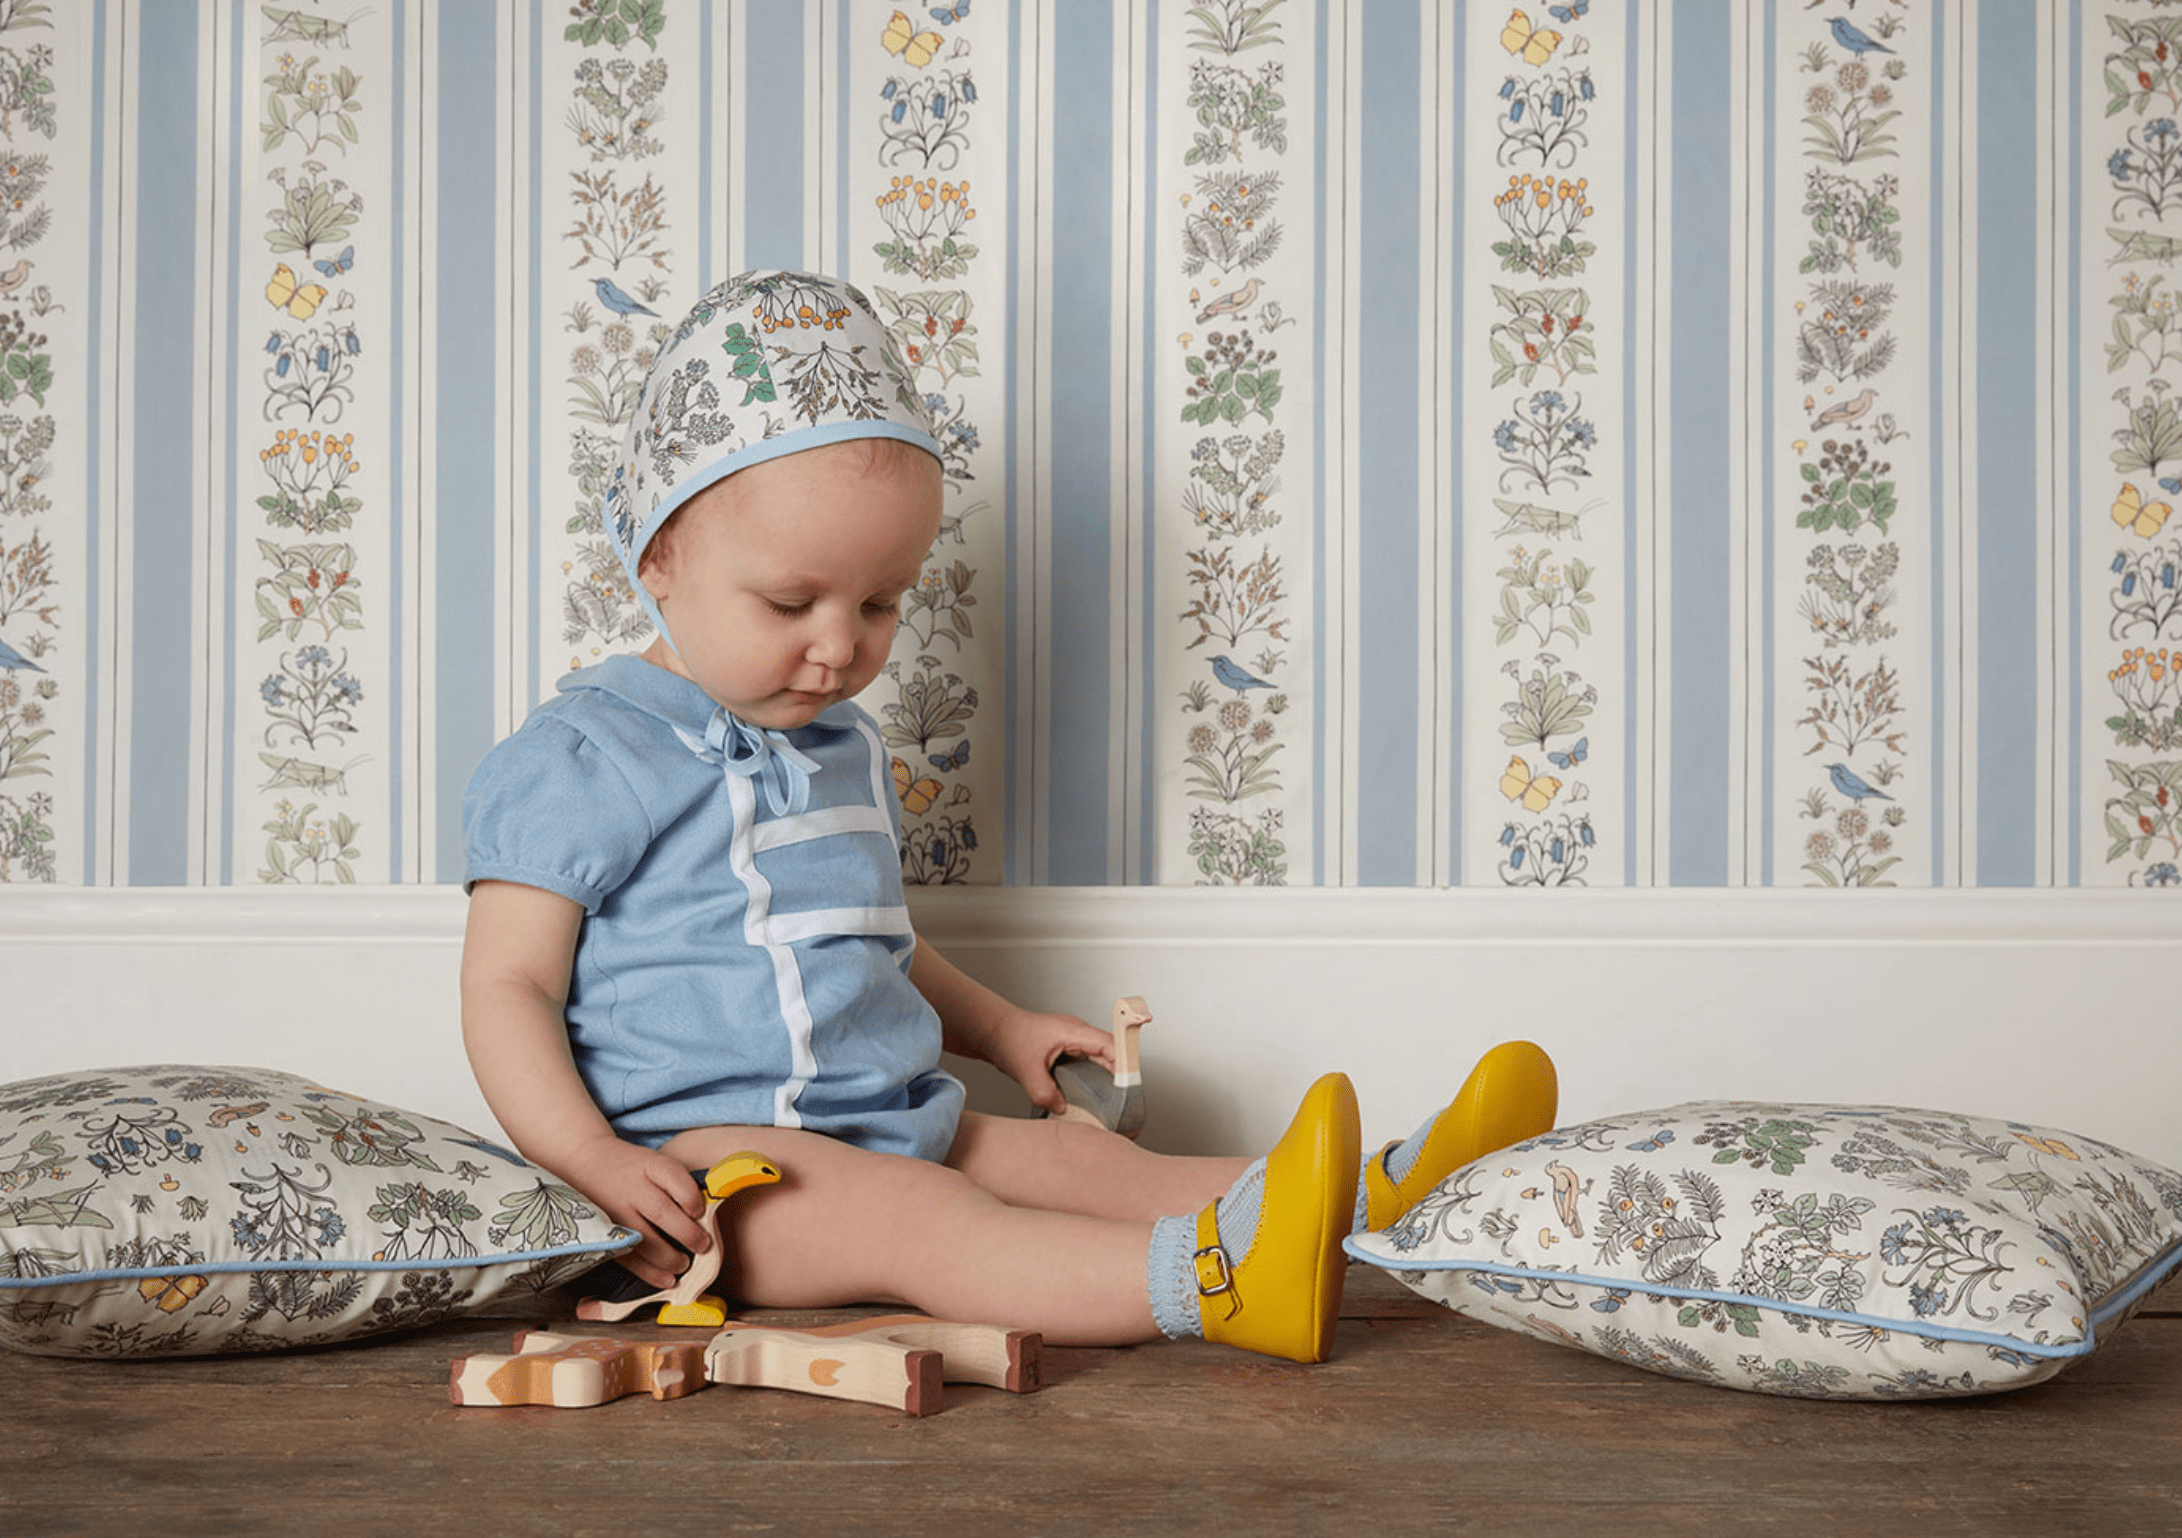 House of Hackney launches kids' fashion collection with La Coqueta